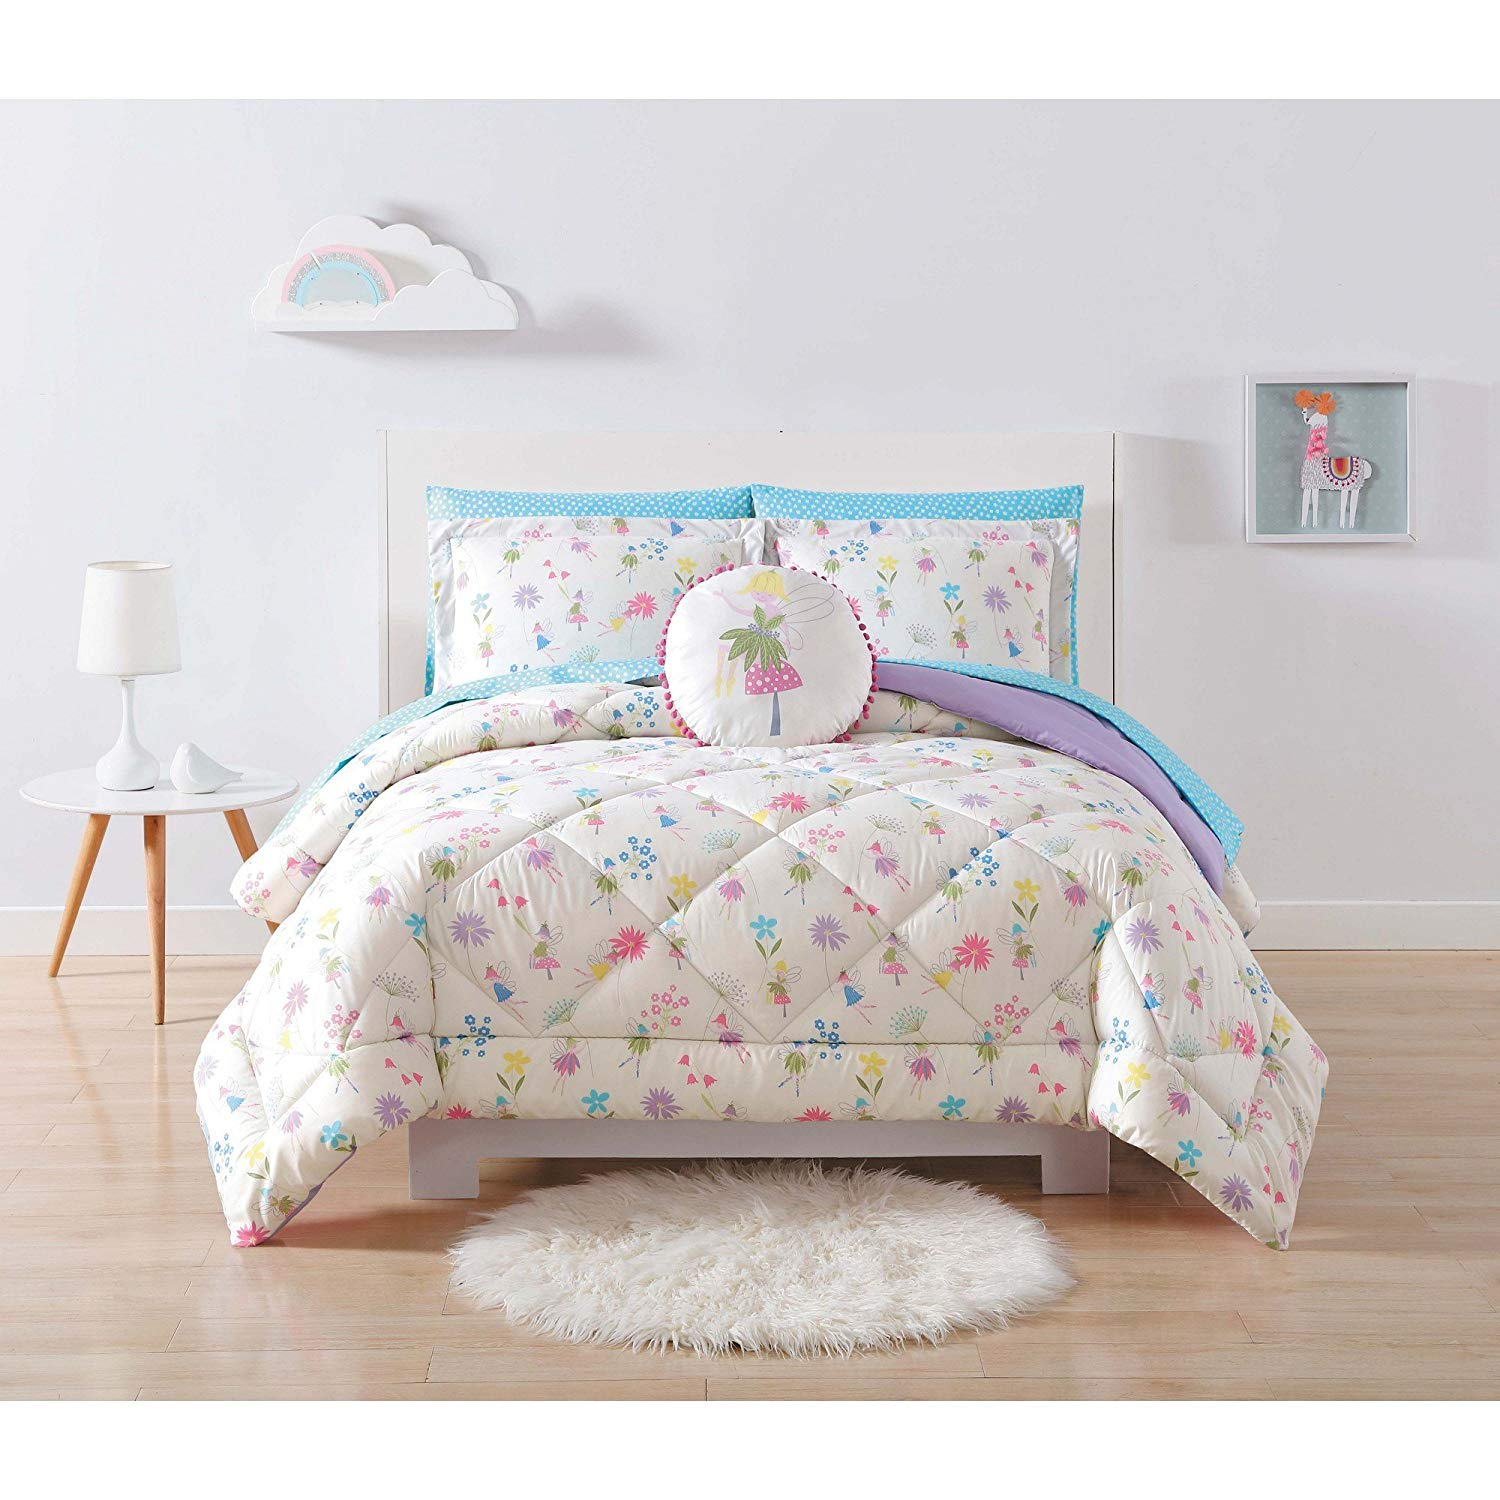 Unkk 2 Piece Girls White Purple Pink Flower Garden Faires Themed Comforter Twin XL Set, Girly All Over Floral Fairy Princess Bedding, Cute Fun Blue Yellow Green Diasy Pattern, Polyester